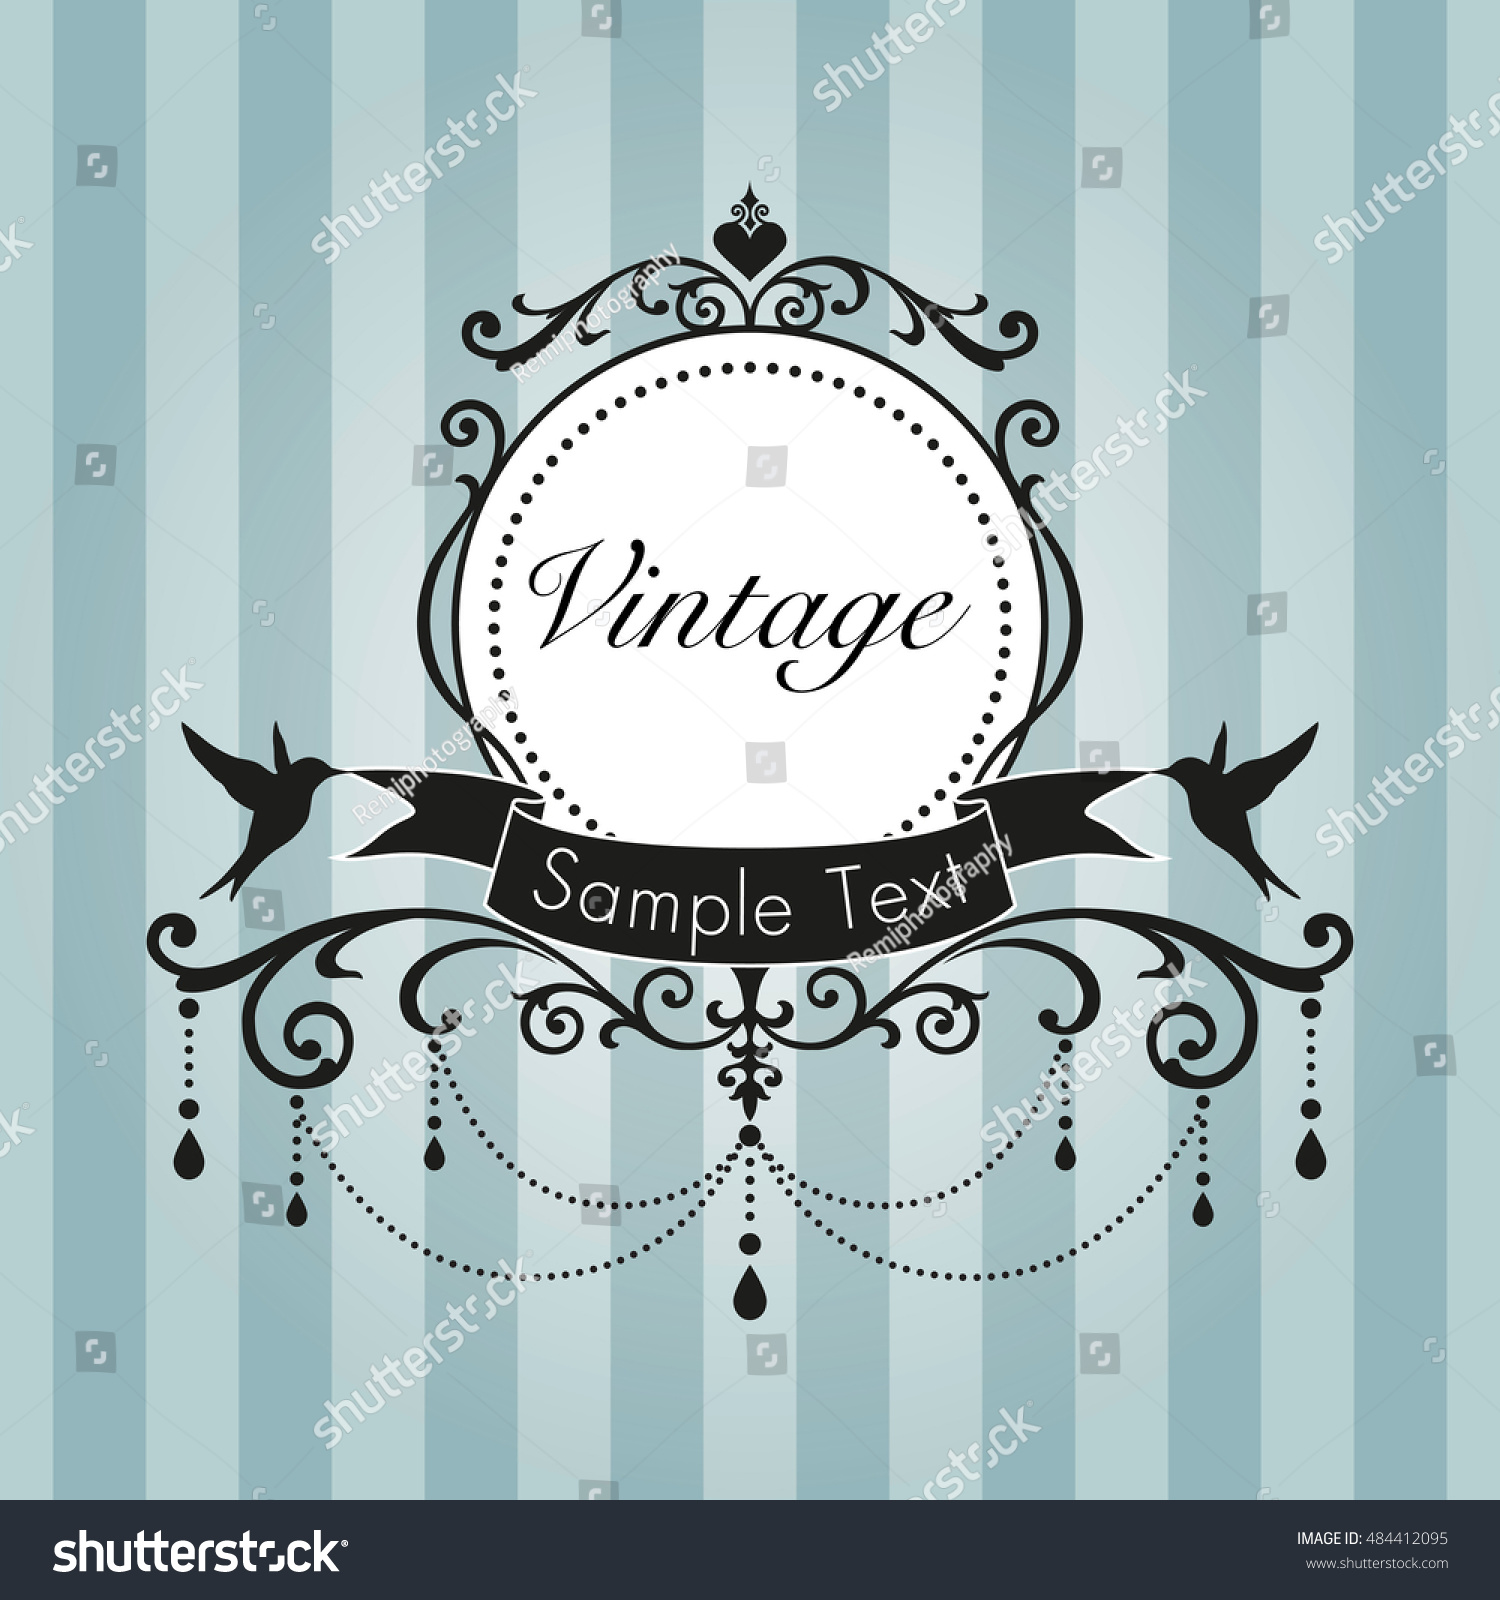 Chandelier vintage frame birds on blue stock vector hd royalty free chandelier vintage frame with birds on blue stripe background arubaitofo Gallery